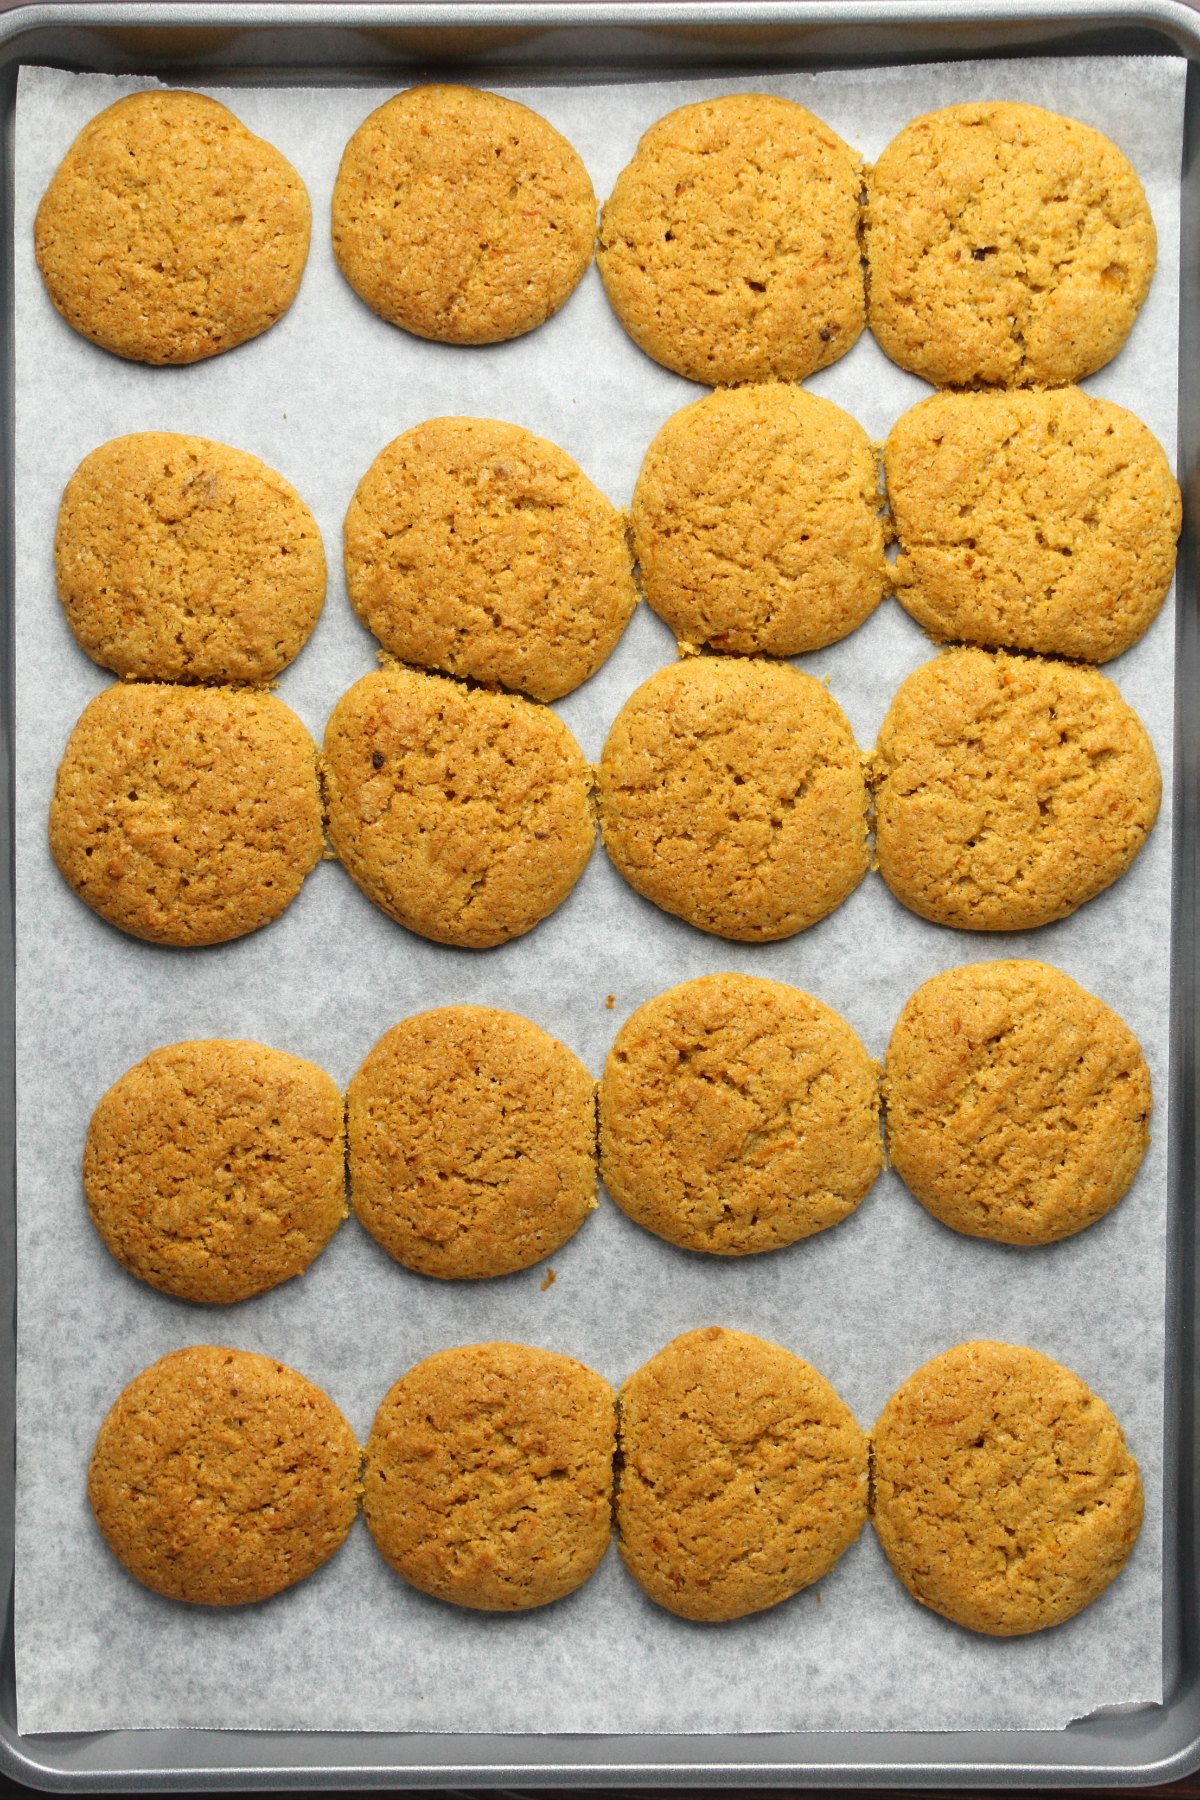 Freshly baked pumpkin cookies on a parchment lined baking tray.